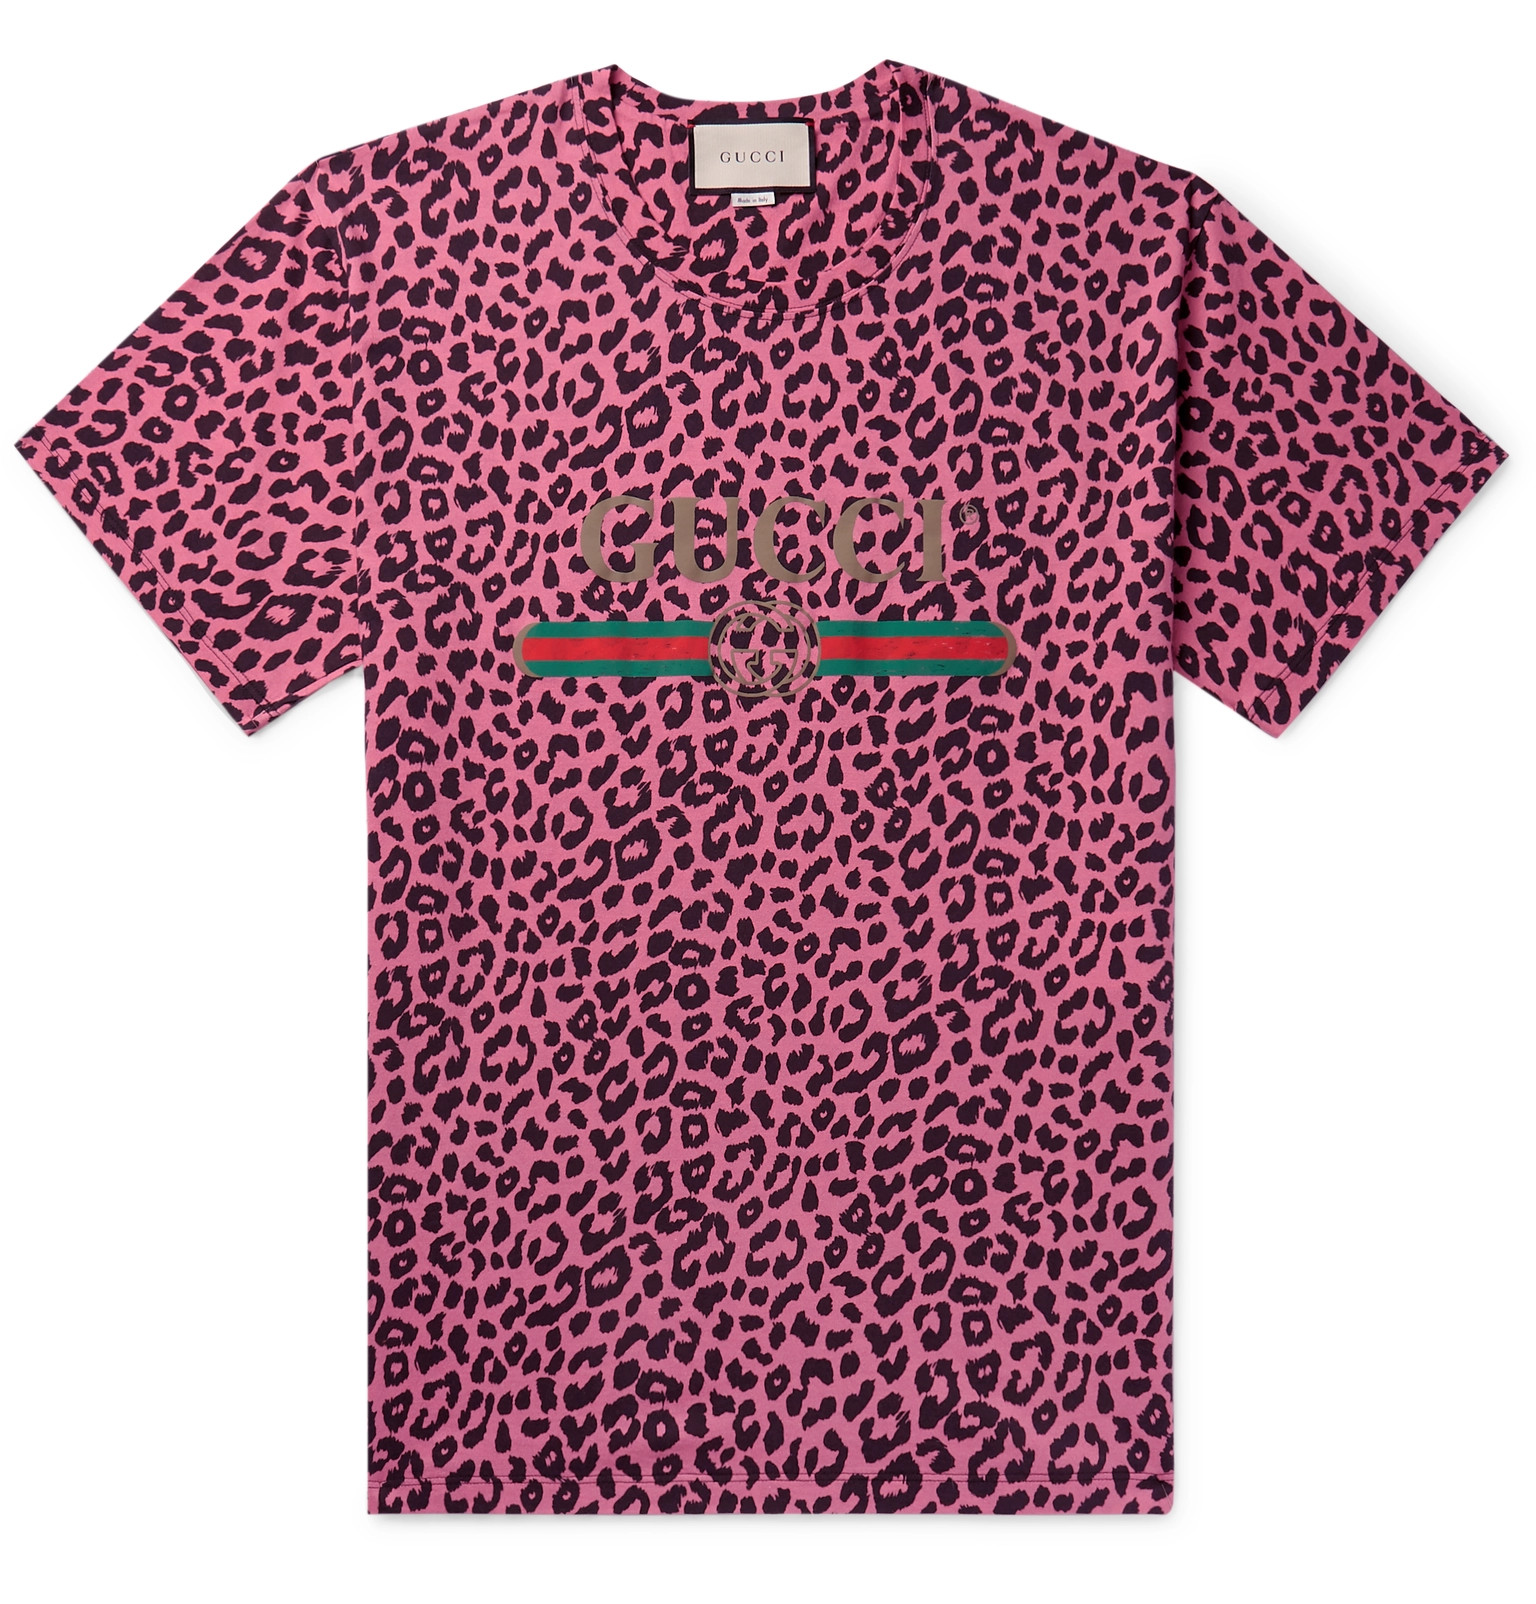 Gucci Logo And Leopard Print Cotton Jersey T Shirt